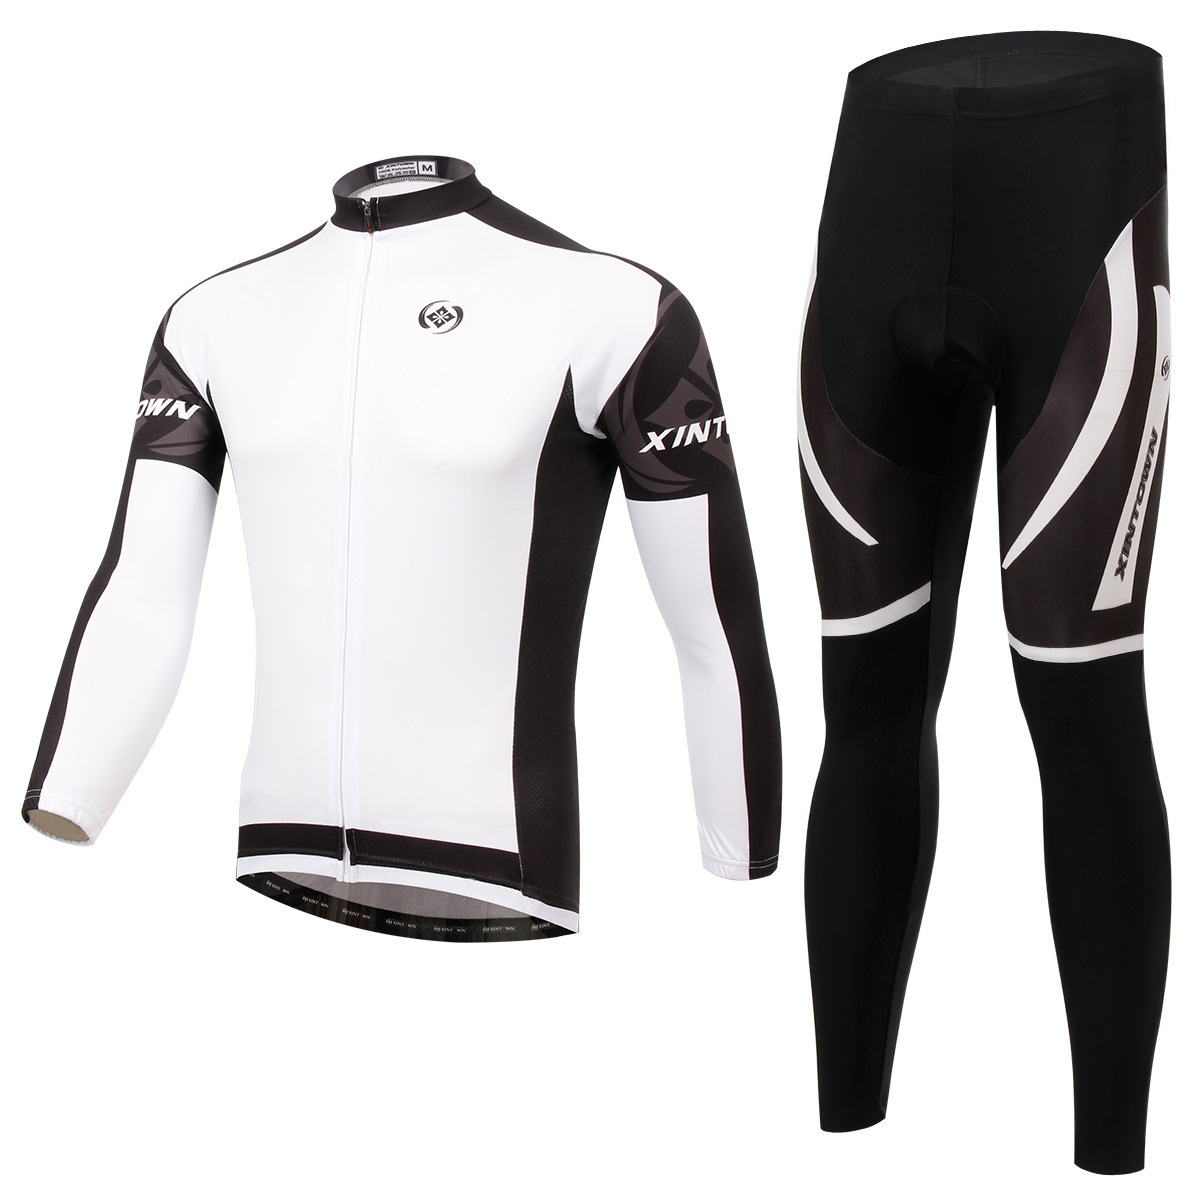 XINTOWN Dimon white riding suit jersey long sleeve suits spring and autumn moisture wicking quick-drying clothes pants